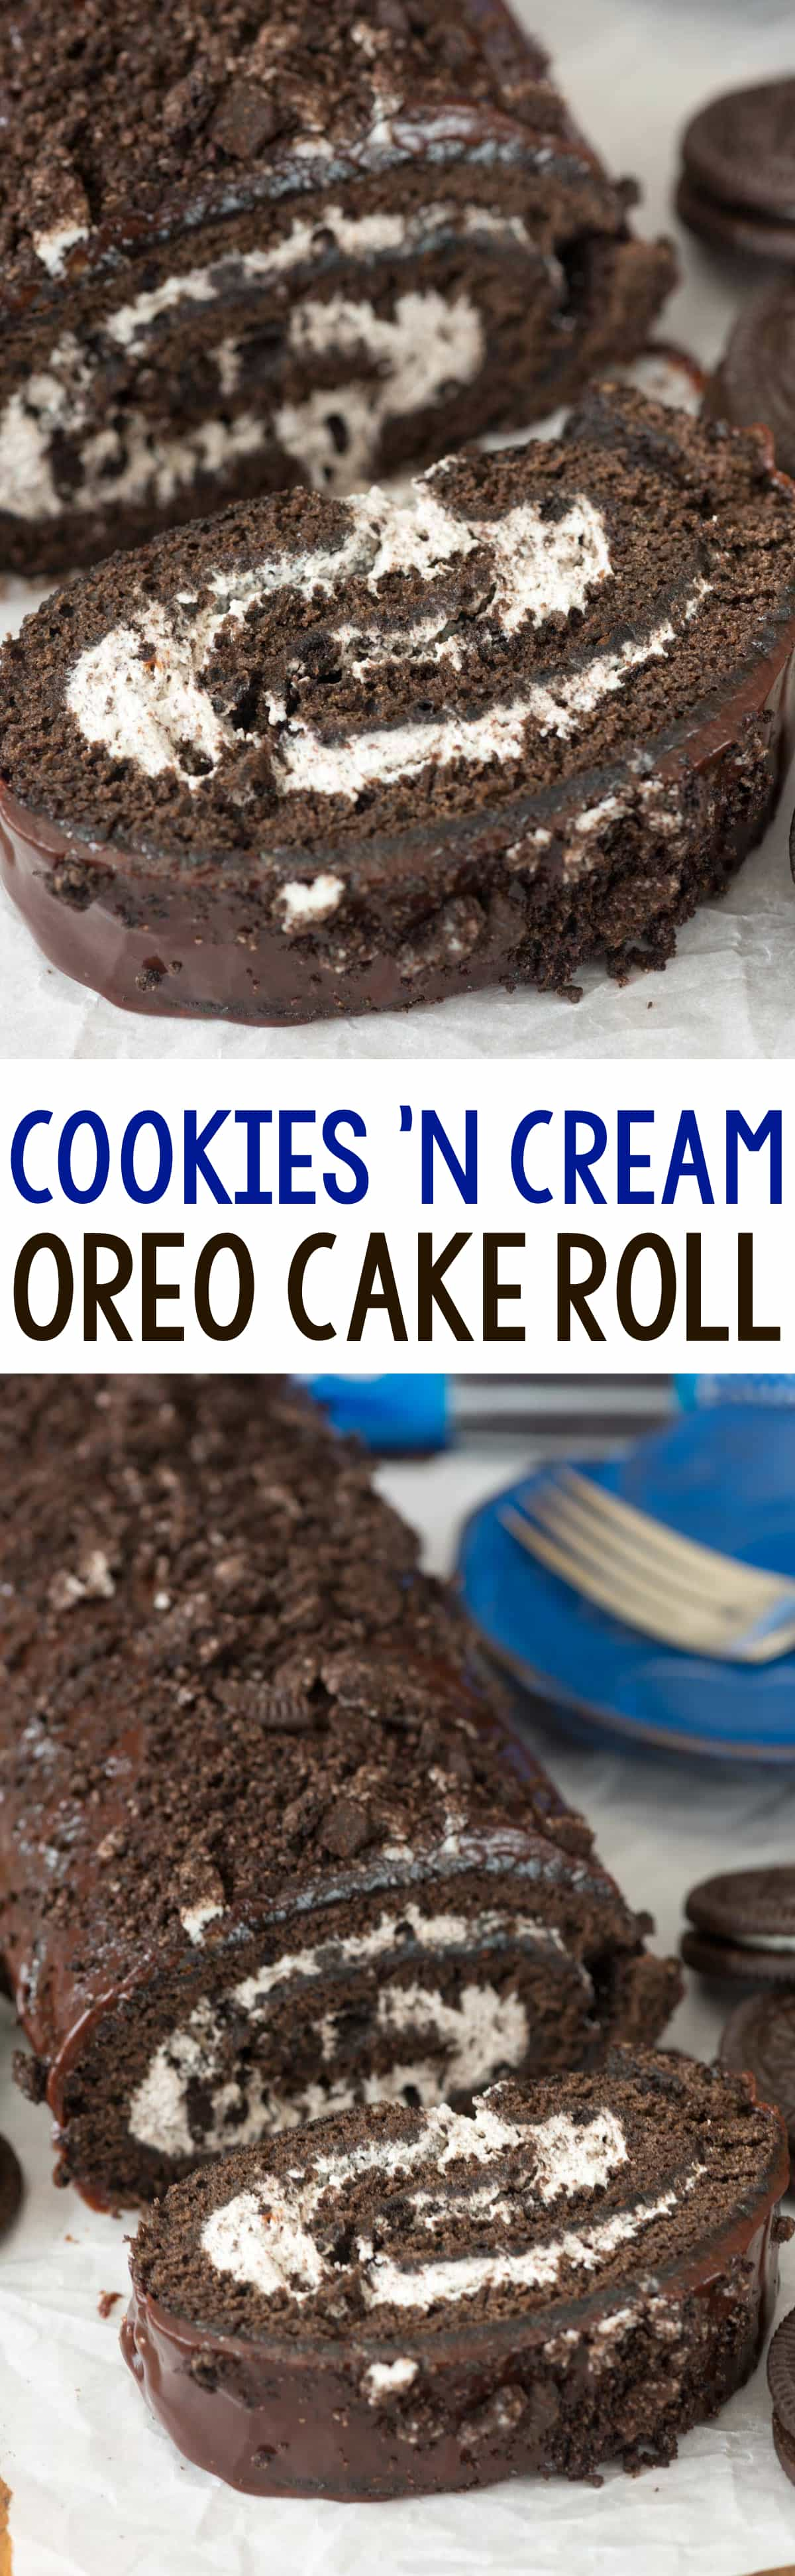 Cookies 'n Cream Oreo Cake Roll - Crazy for Crust